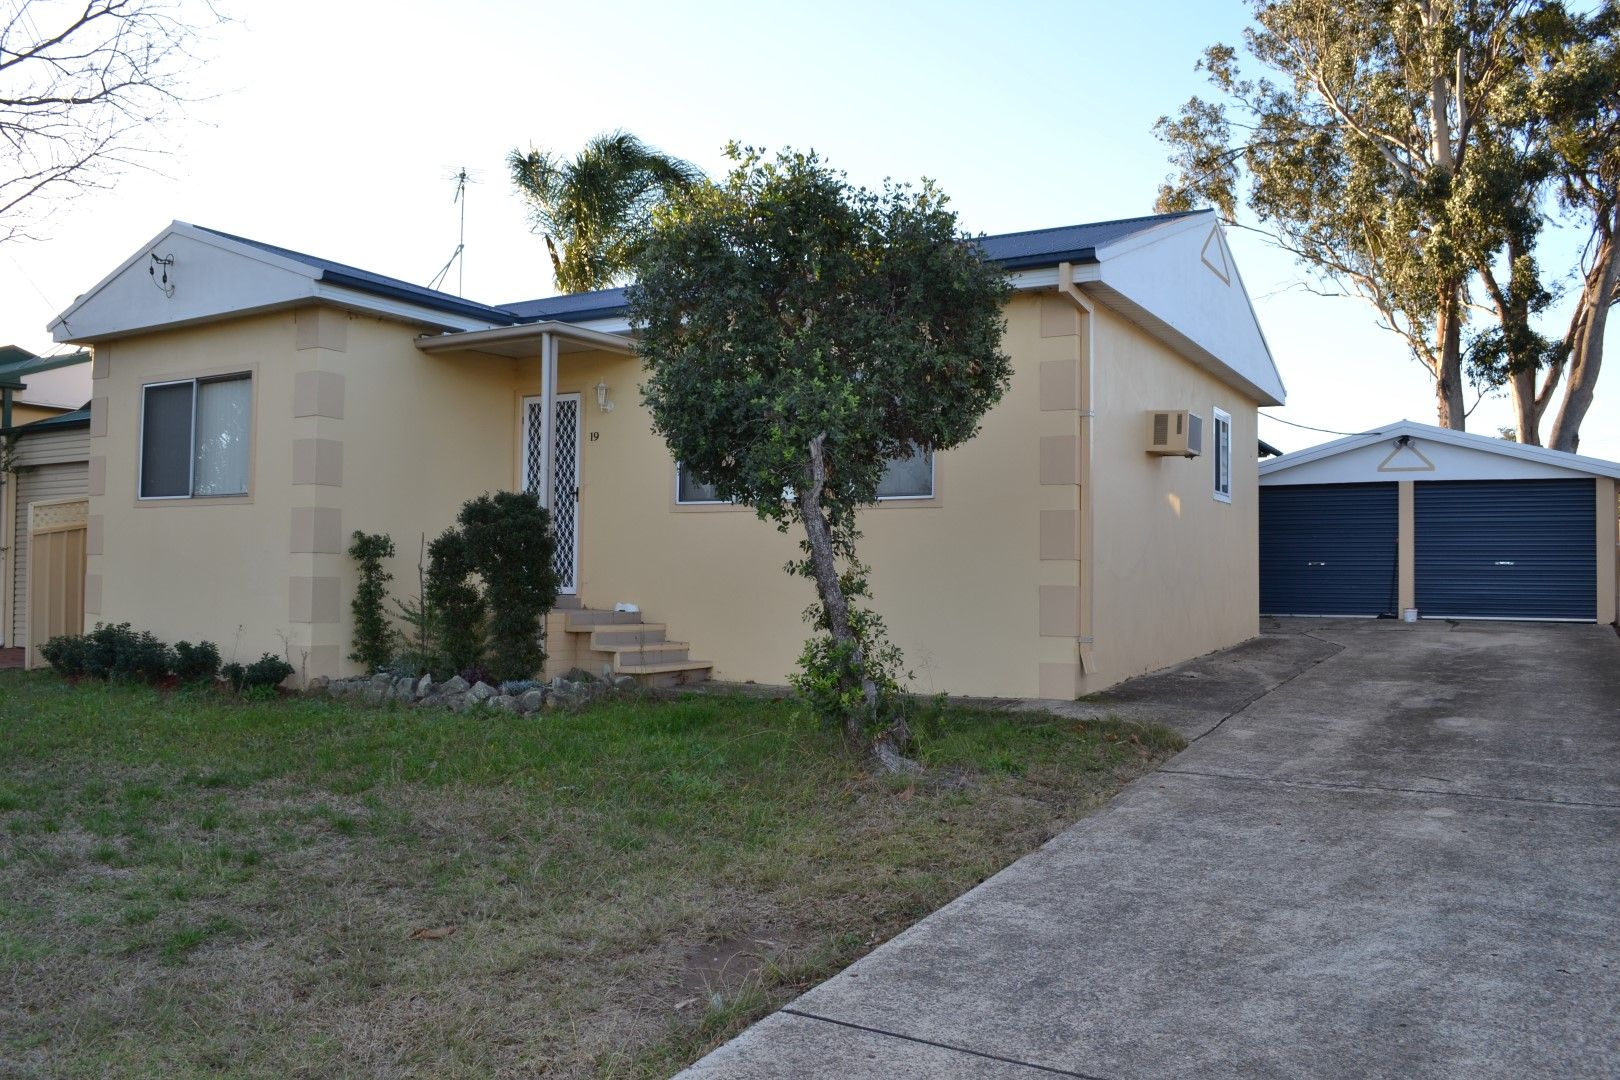 19 Carrington Street, St Marys NSW 2760, Image 0